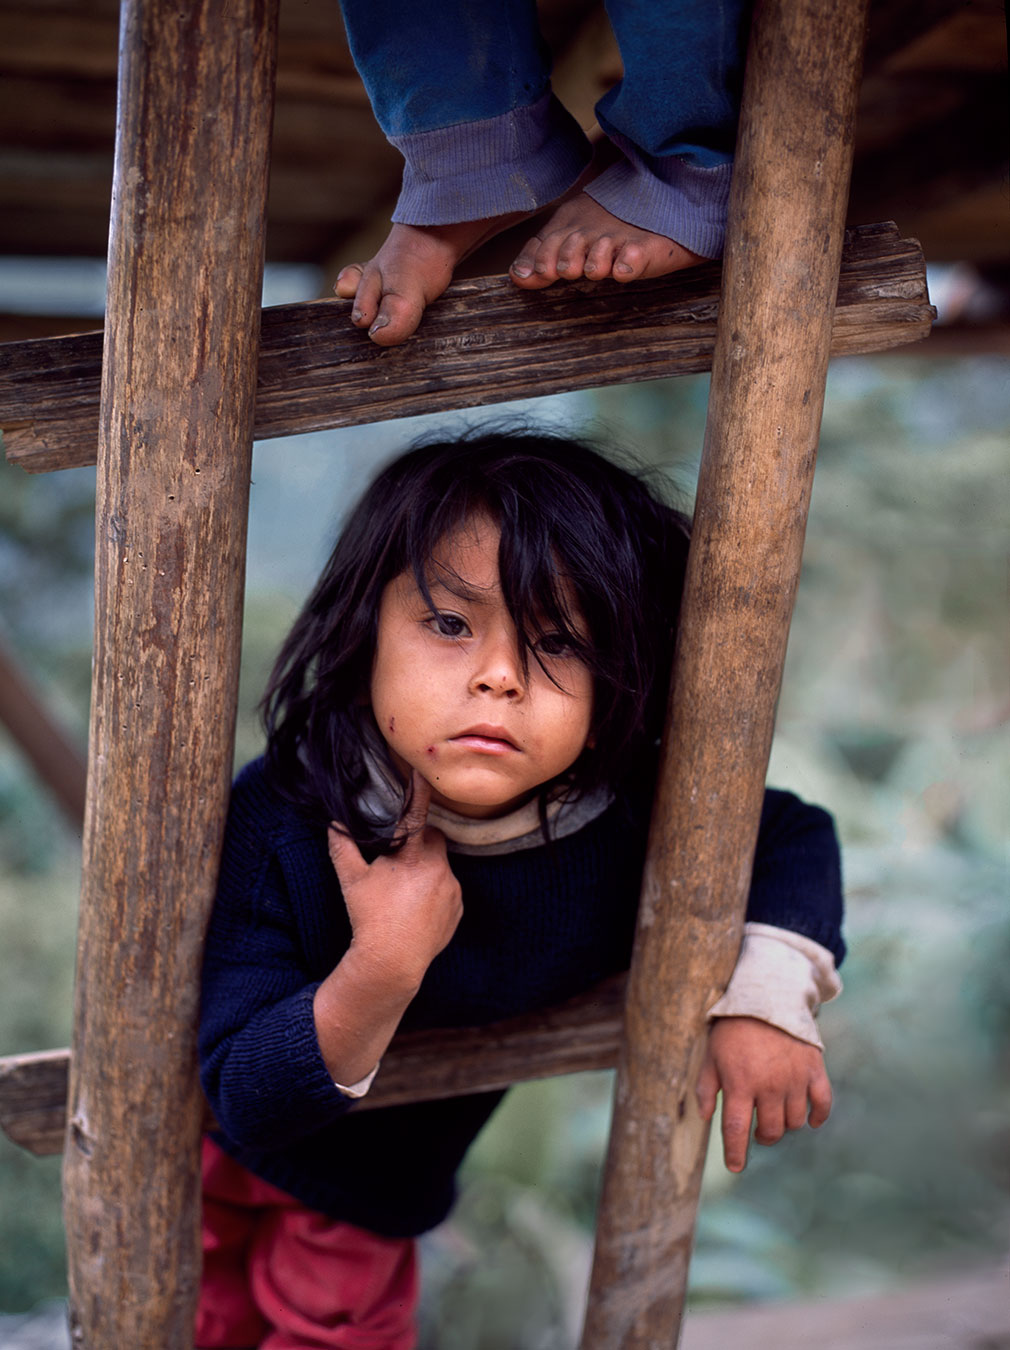 McCurry, Perù